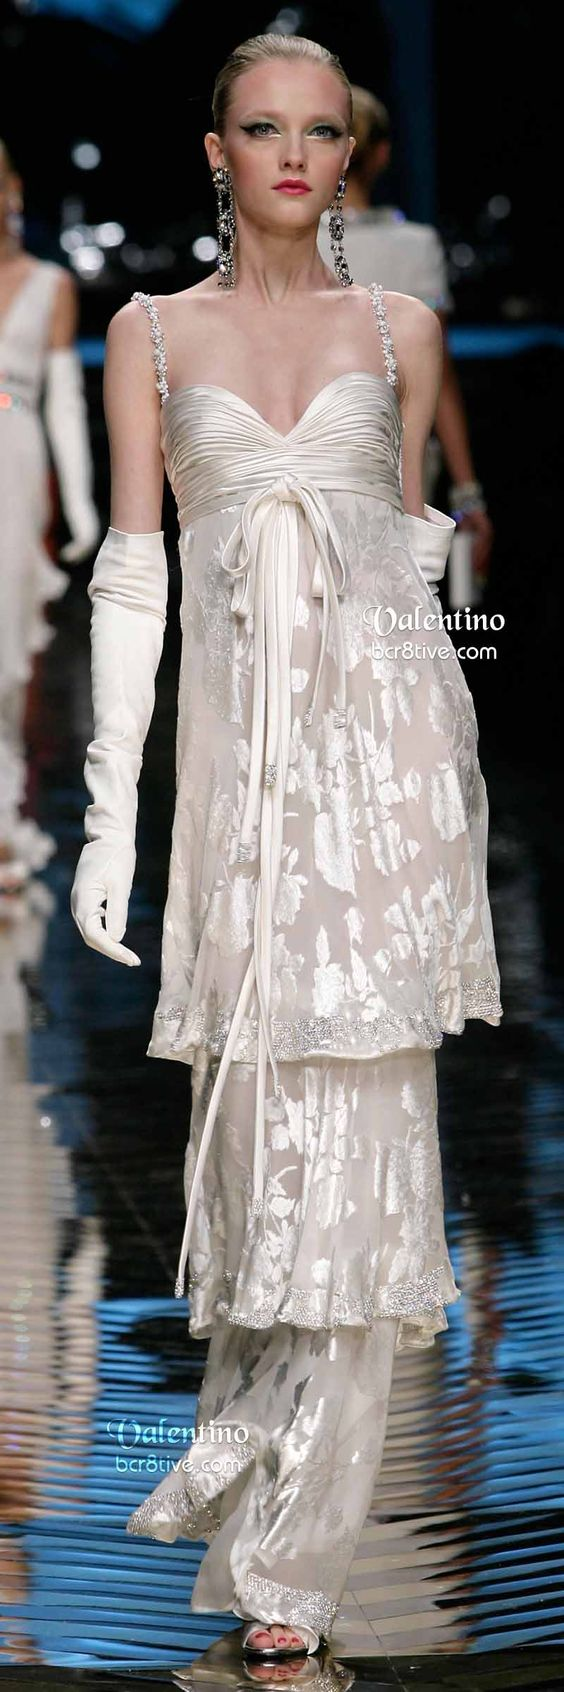 Valentino White Multi-Tiered Evening Gown - Farewell Valentino Collection